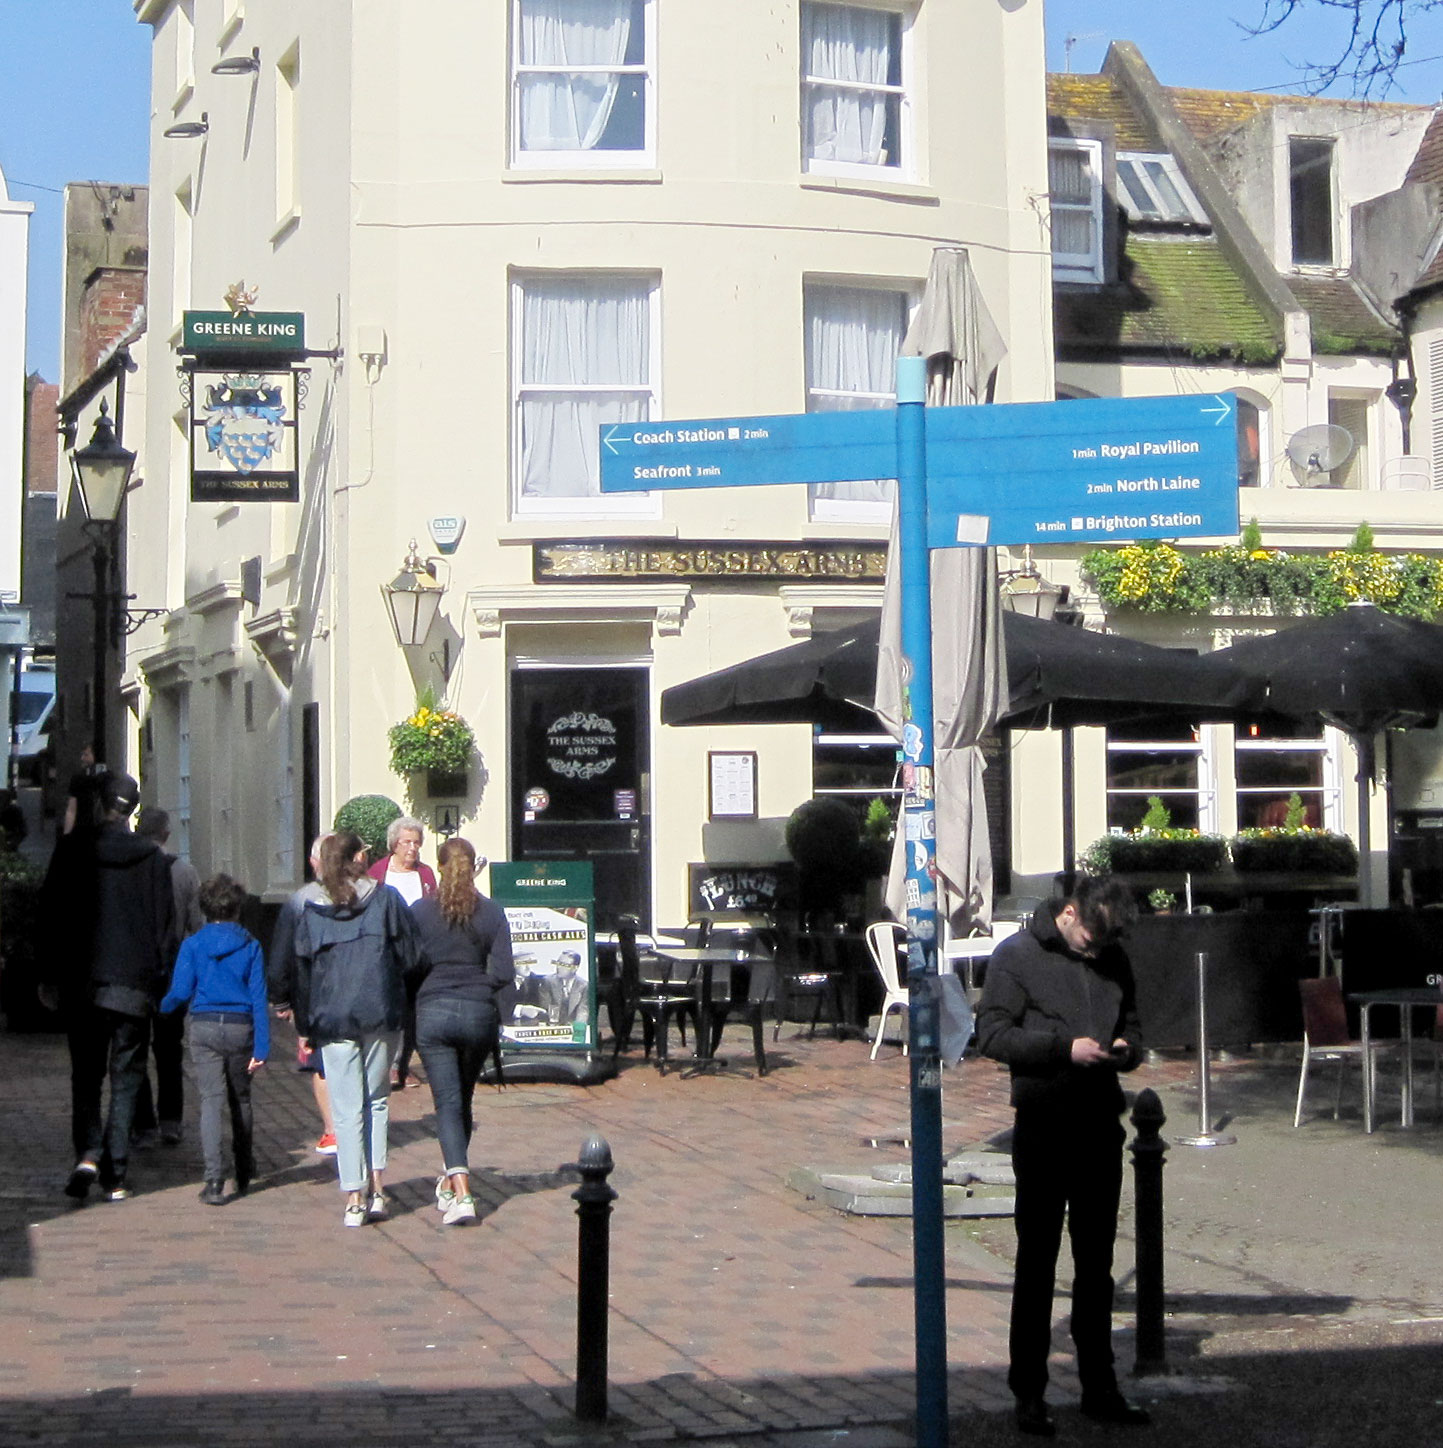 Sussex Pub in Brighton